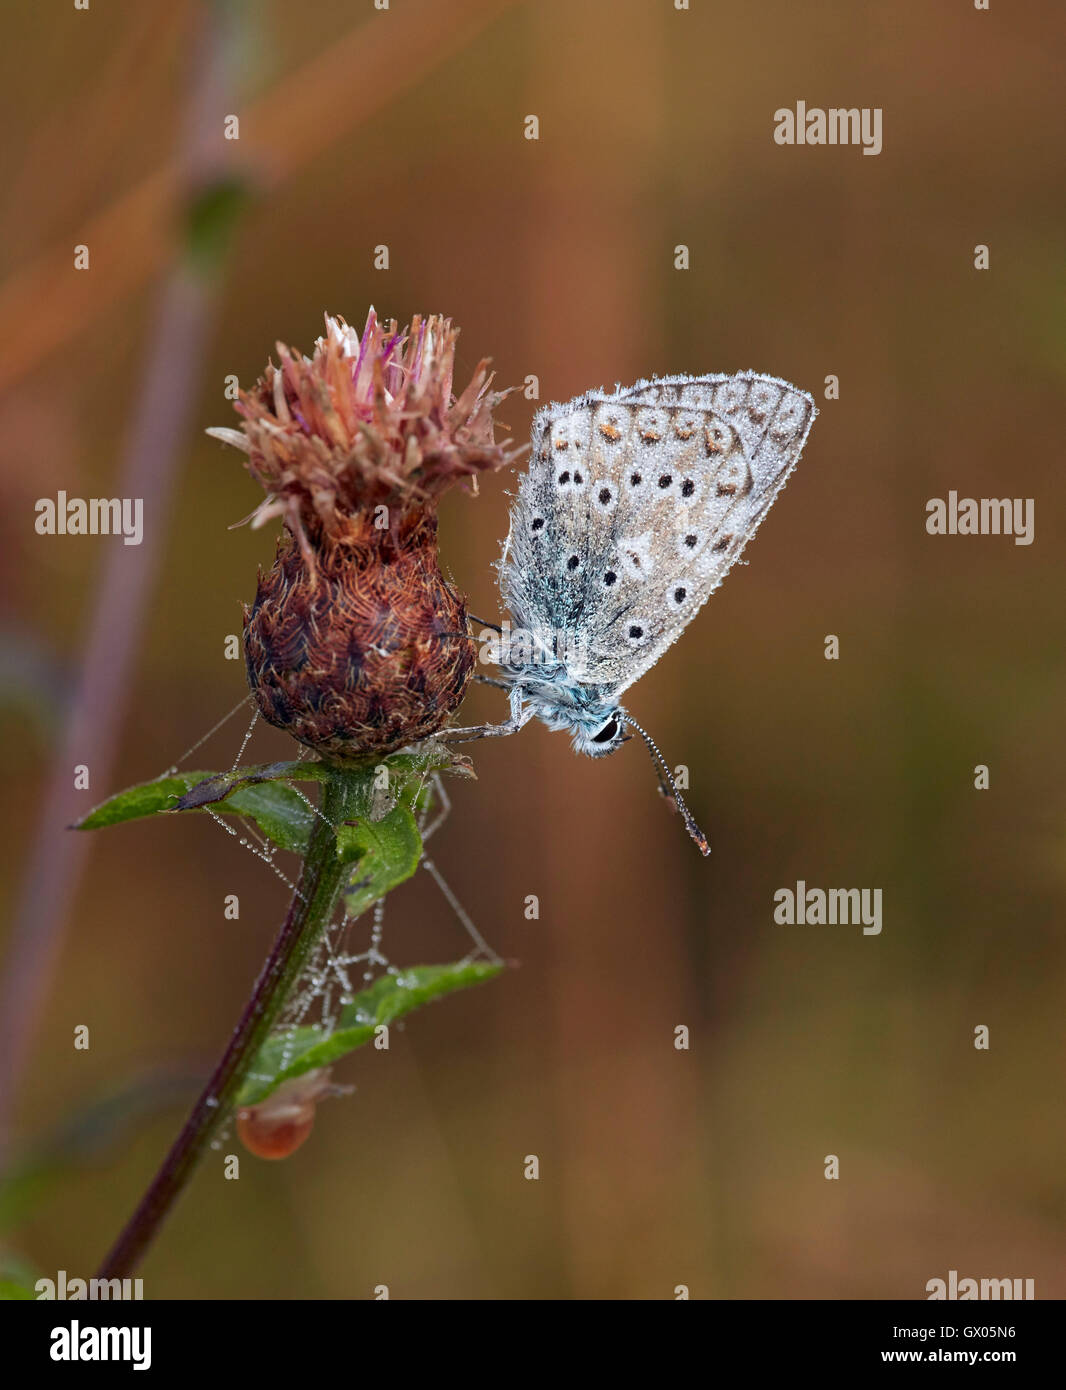 Dew-covered Chalkhill Blue male roosting on knapweed at dawn. Denbies Hillside, Ranmore Common, Surrey, England. - Stock Image